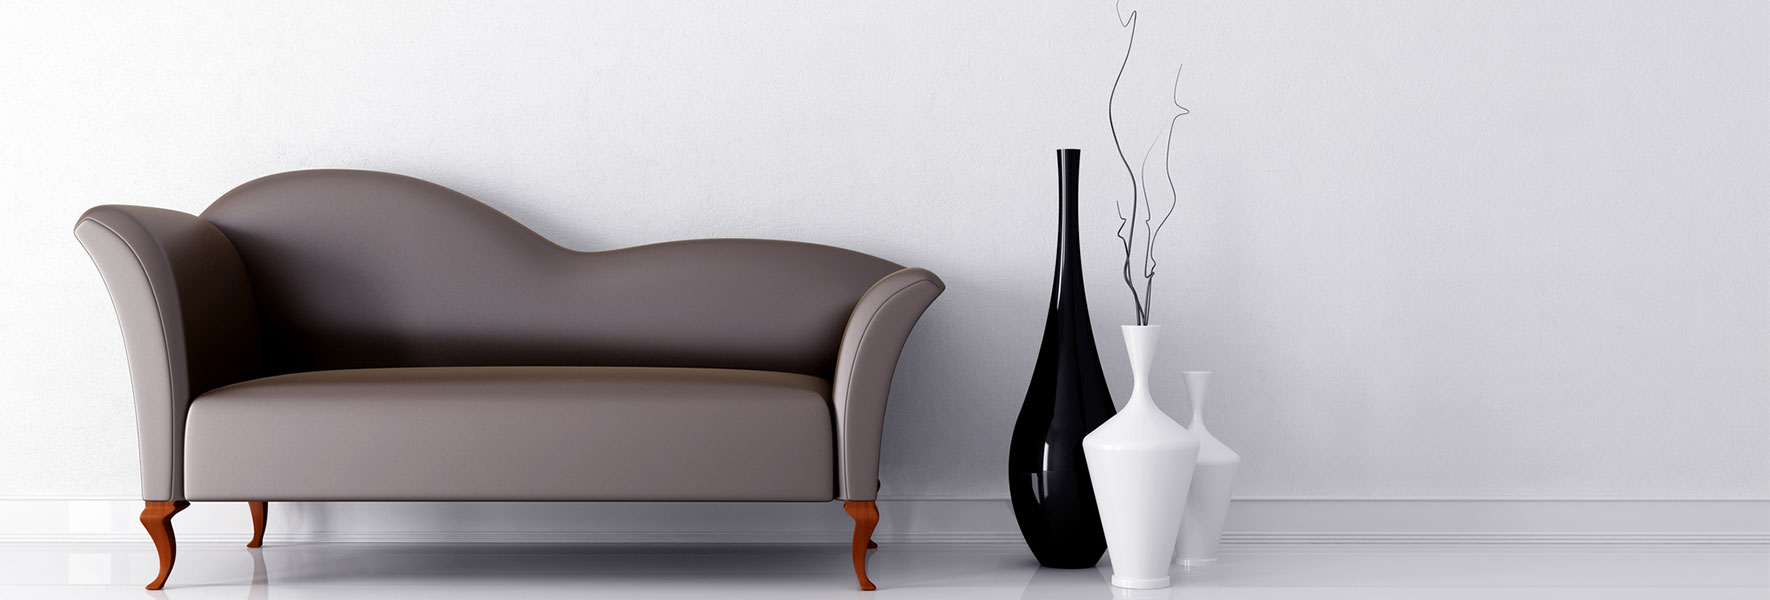 modern styled furniture - sofa and vases